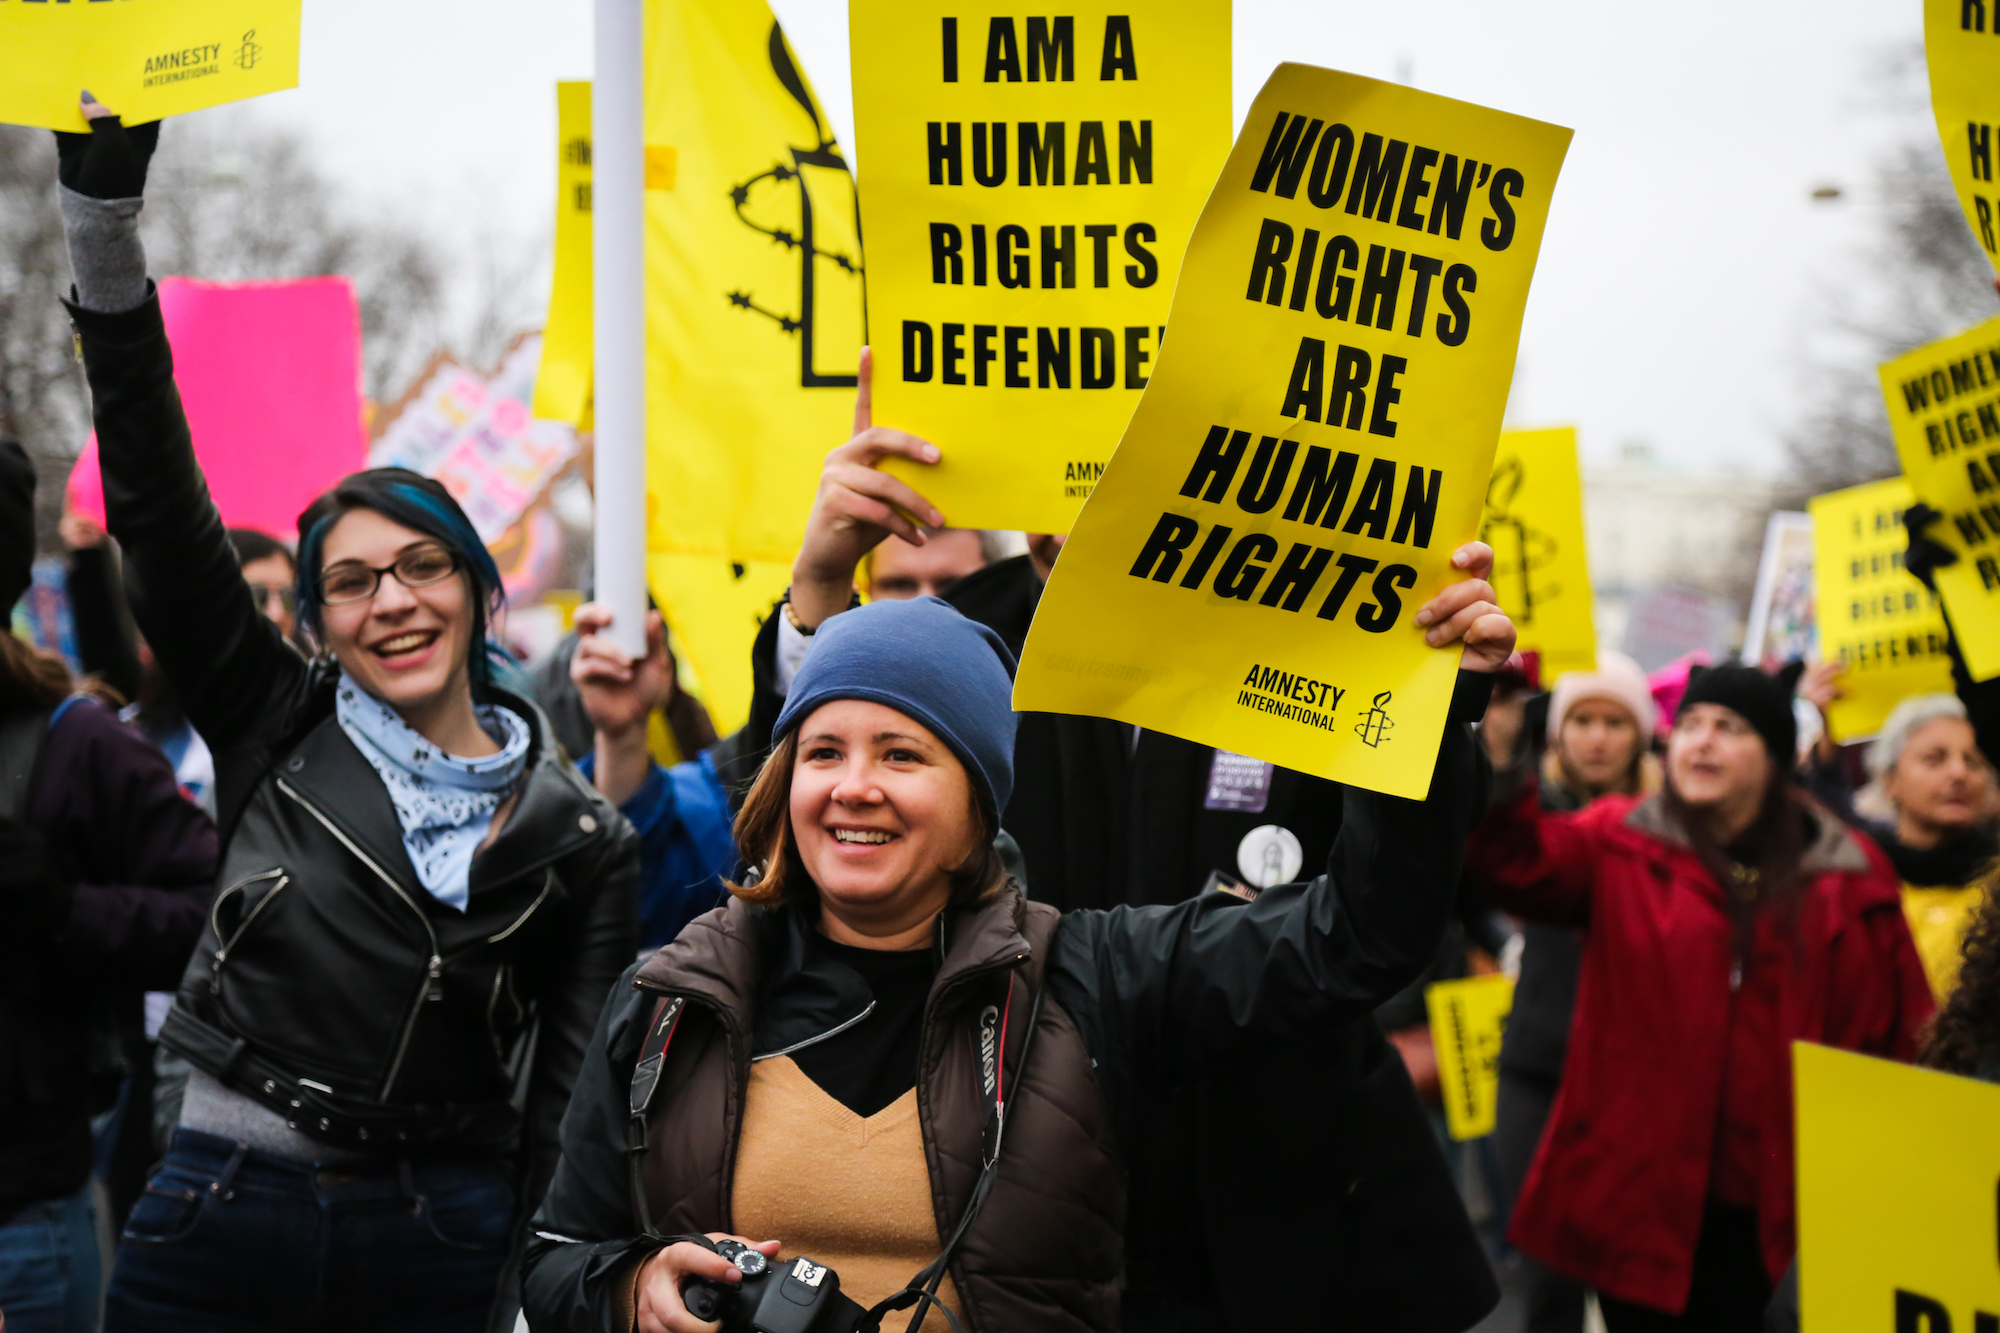 Women protesting at a rally; sign says women's rights are human rights